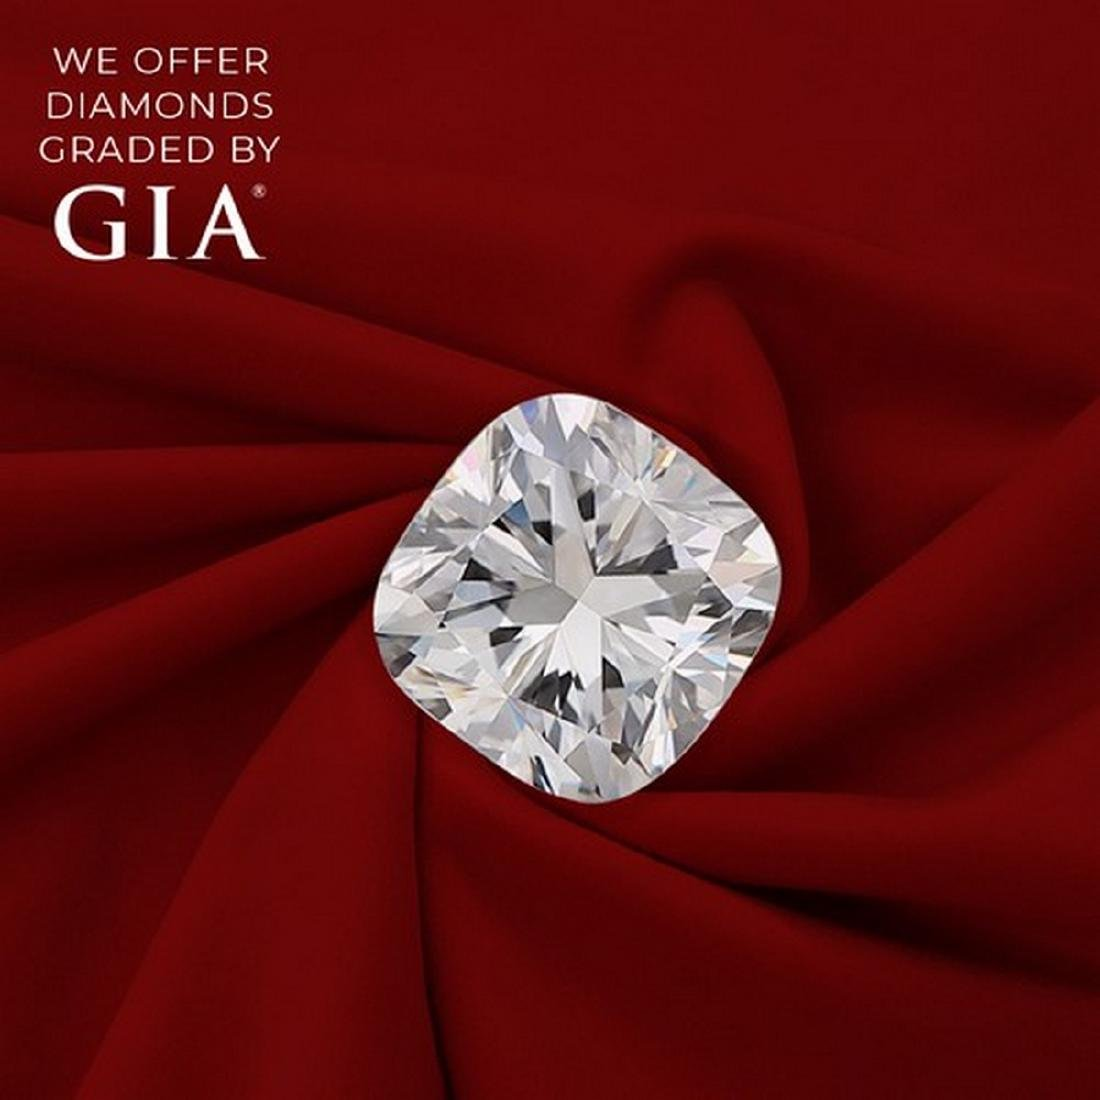 2.51 ct, Color F/VVS1, Cushion cut Diamond